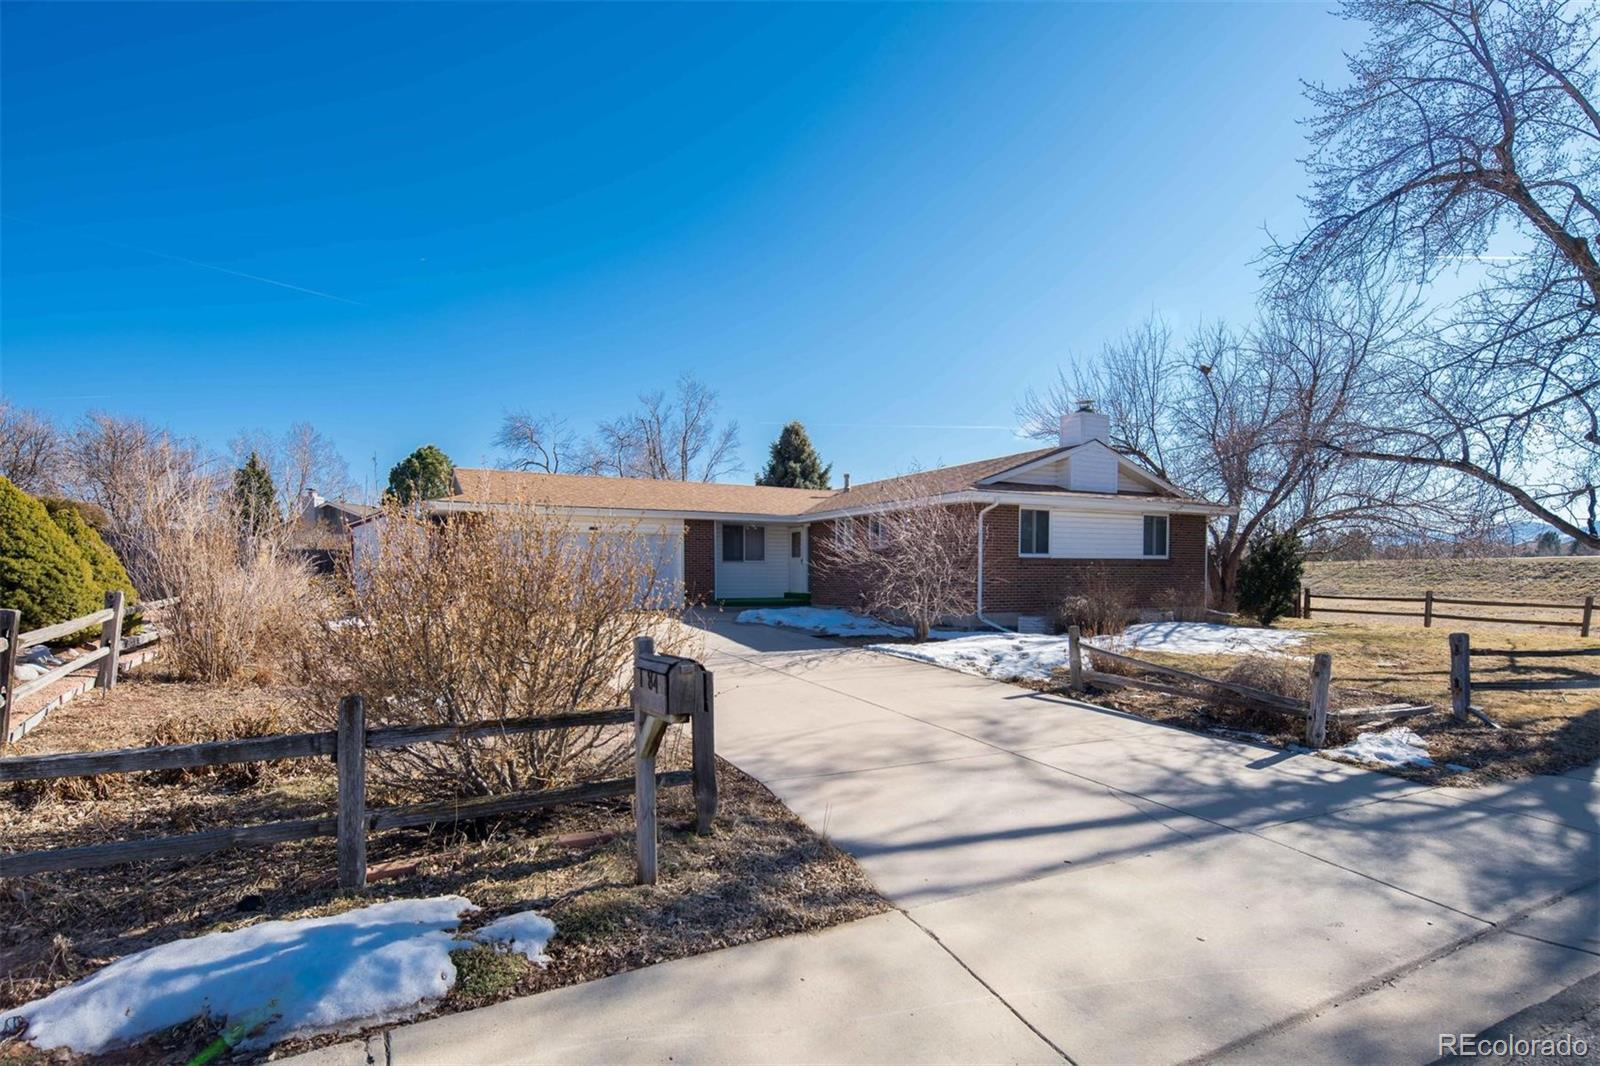 MLS# 5241267 - 3 - 1784 S Holland Street, Lakewood, CO 80232